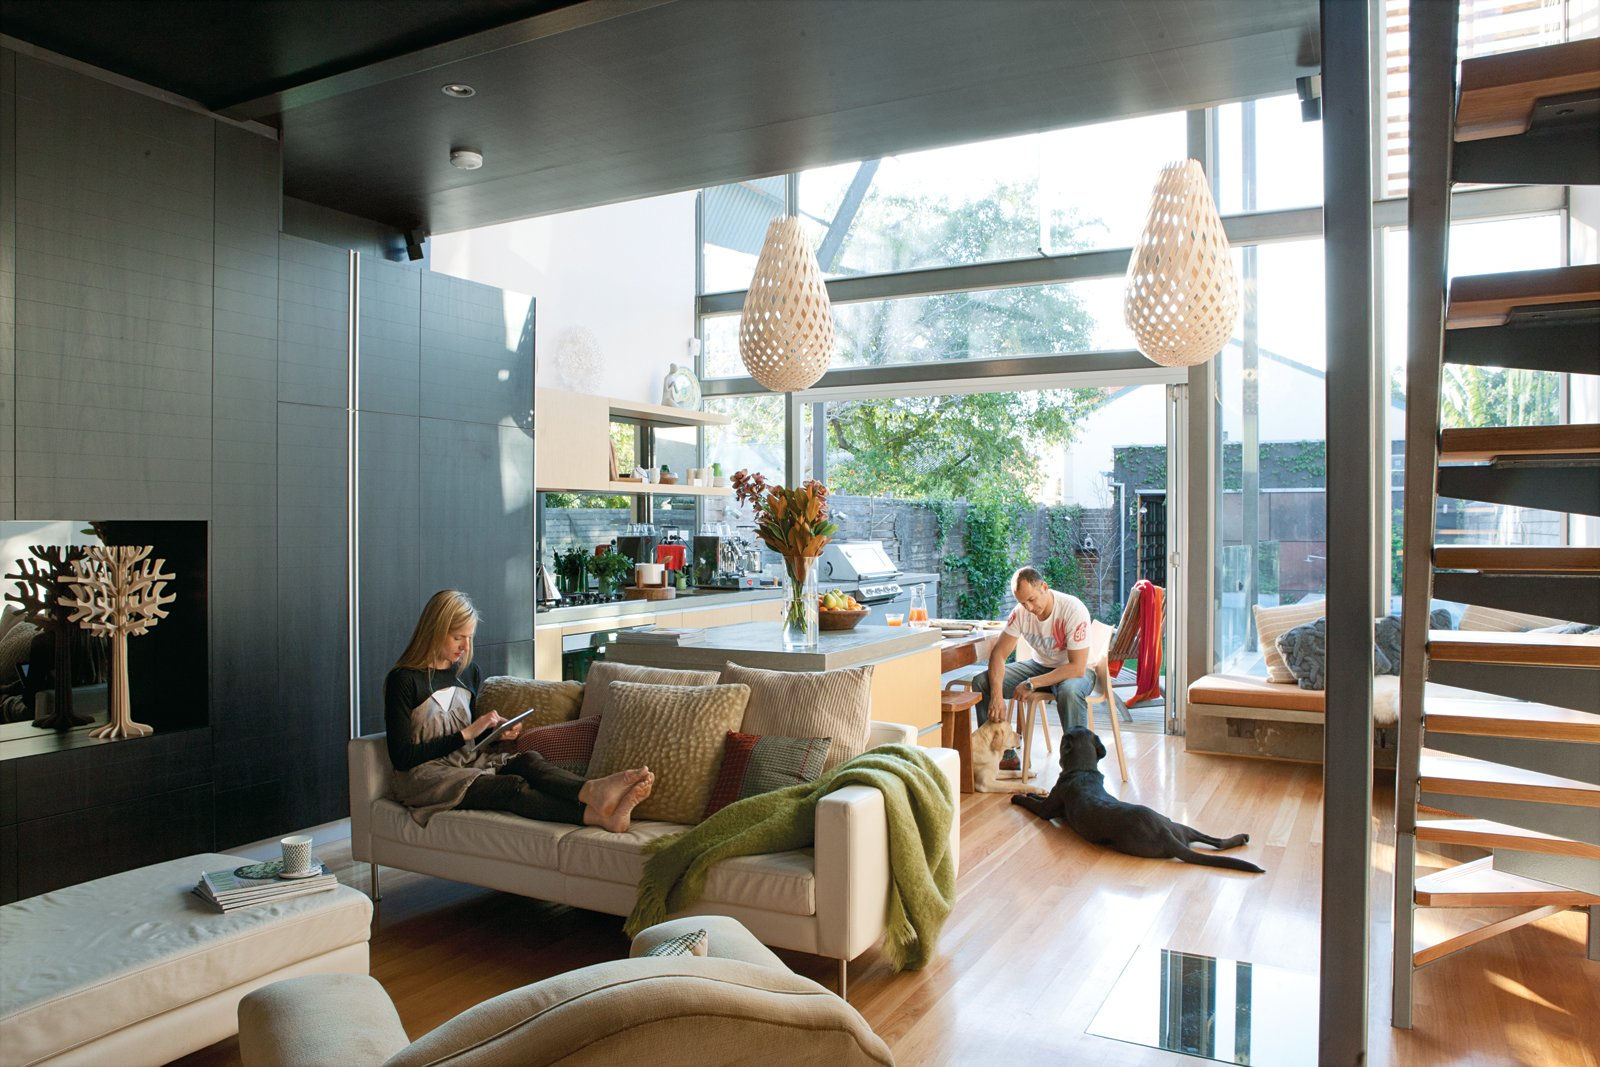 This Luminous Australian Renovation Packs A Lot Into A 23 Foot Wide Lot